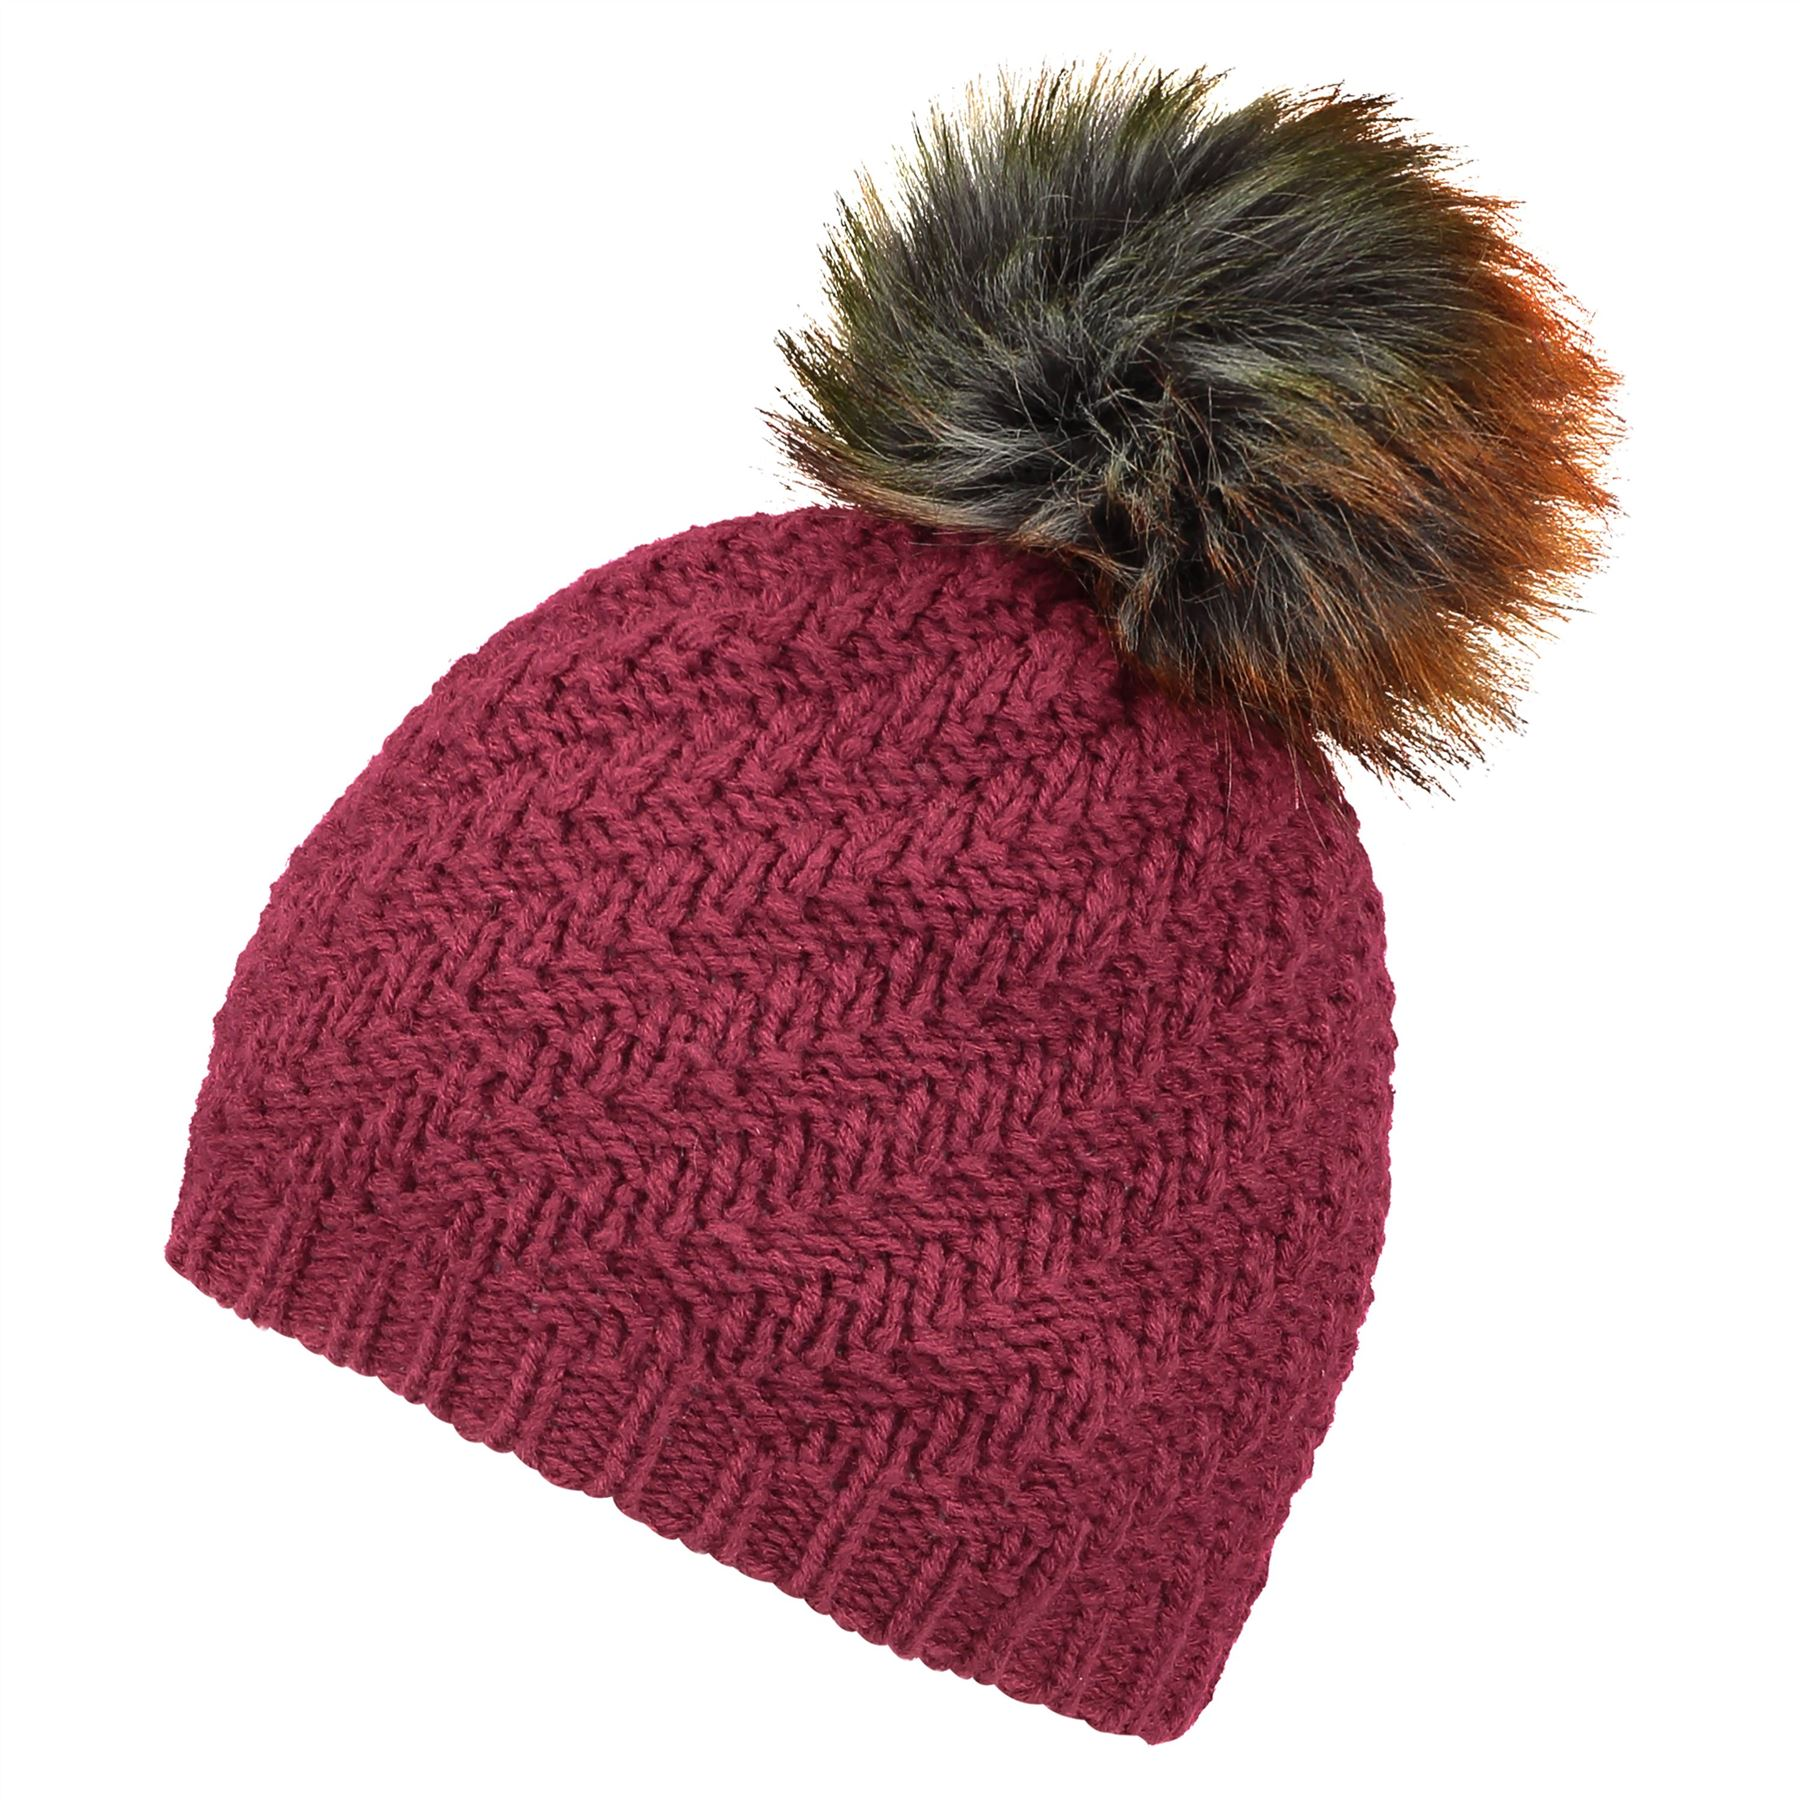 Image of Faux Fur Pom Beanie Hat - Classic Burgundy - One Size